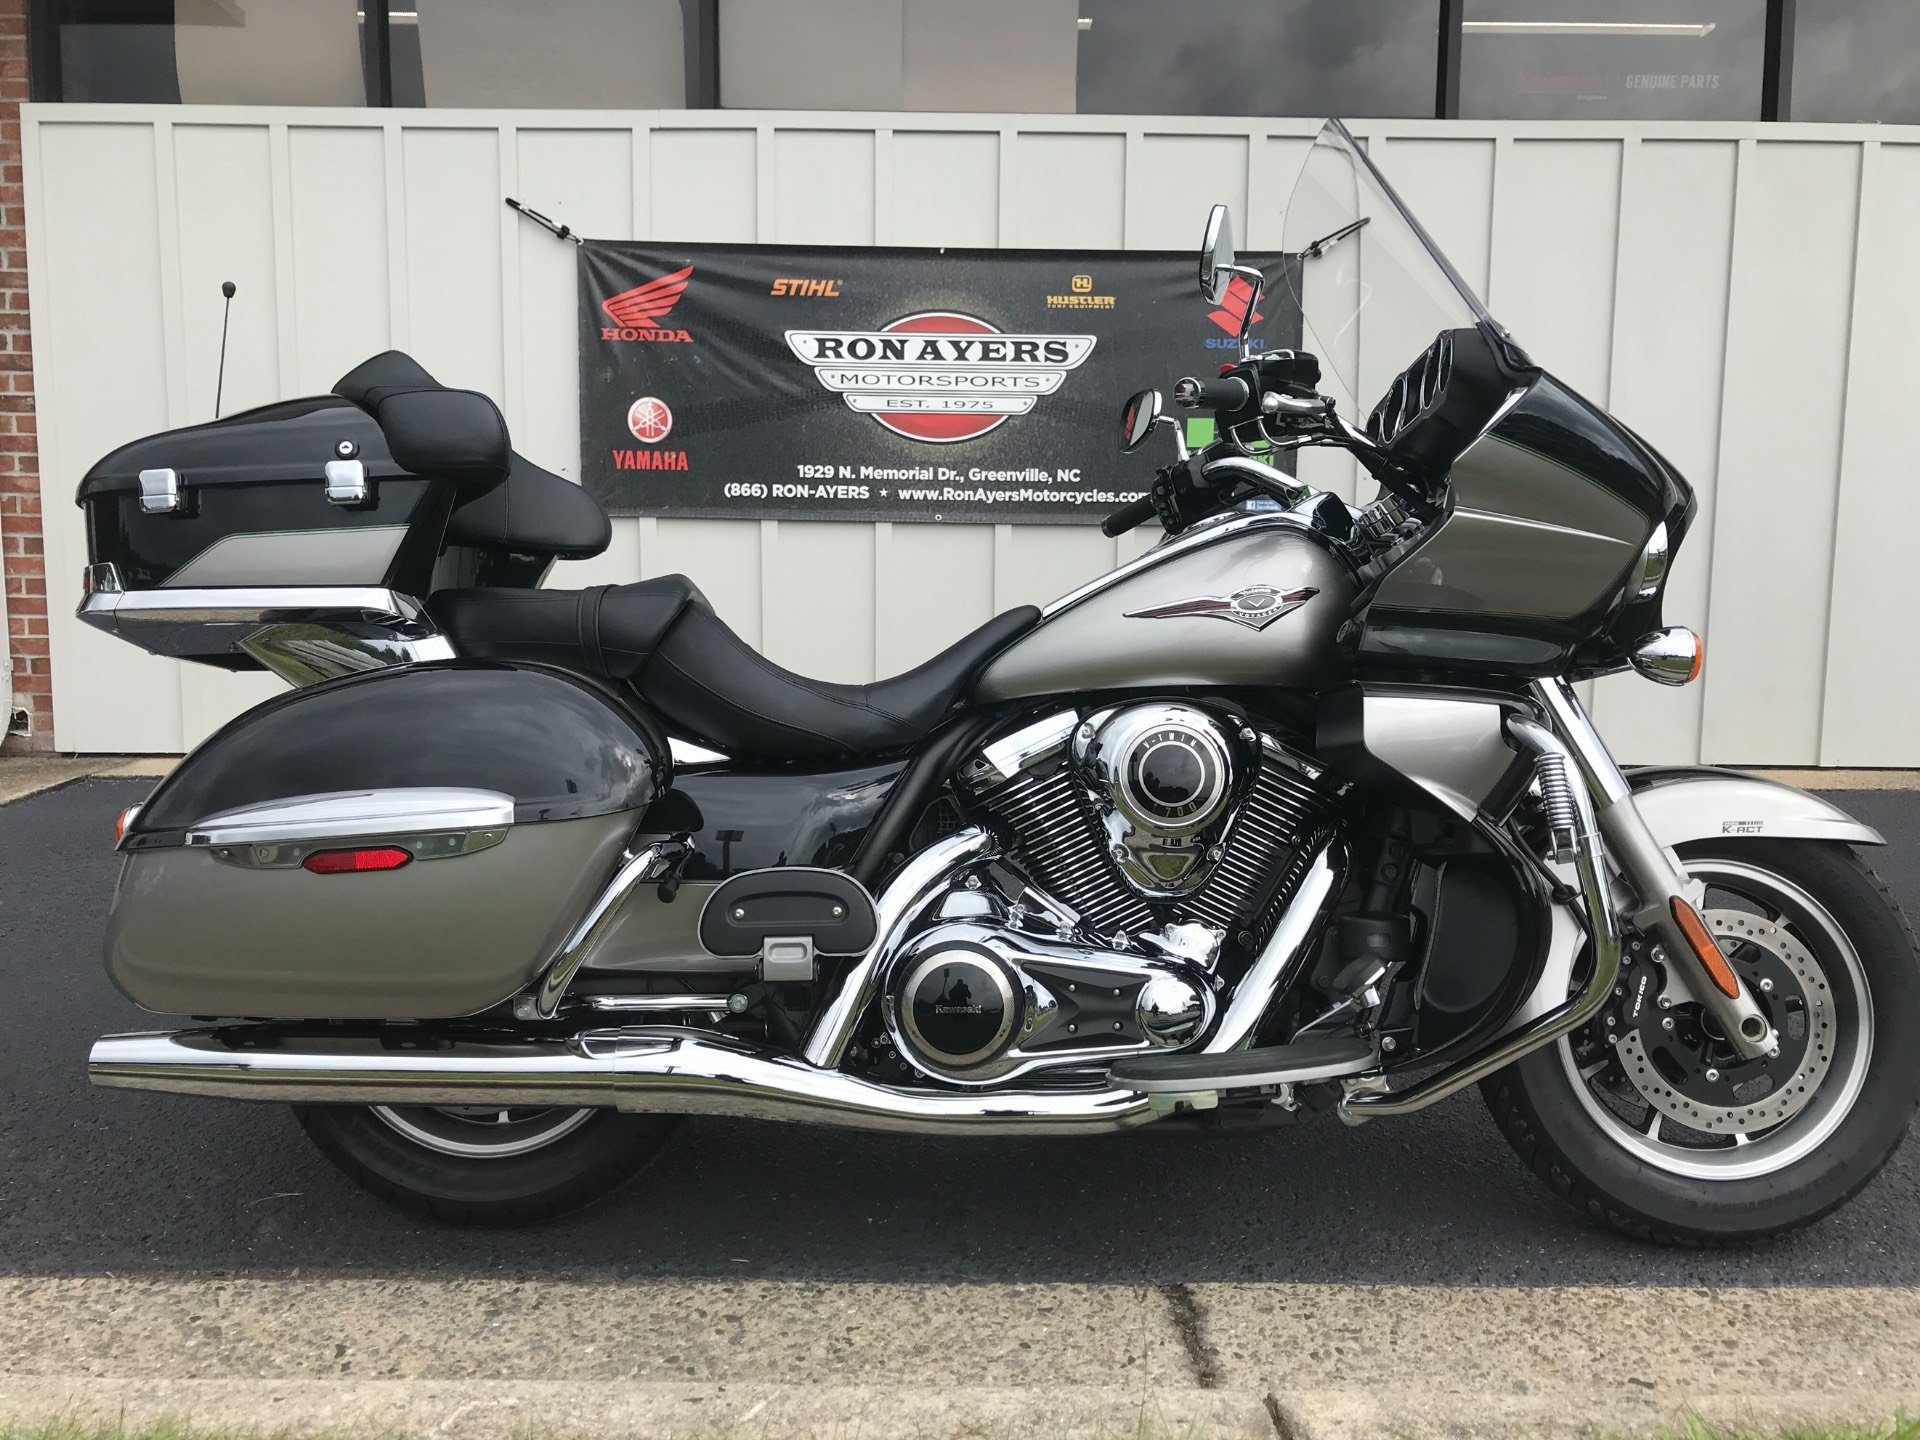 2016 Kawasaki Vulcan 1700 Voyager ABS in Greenville, North Carolina